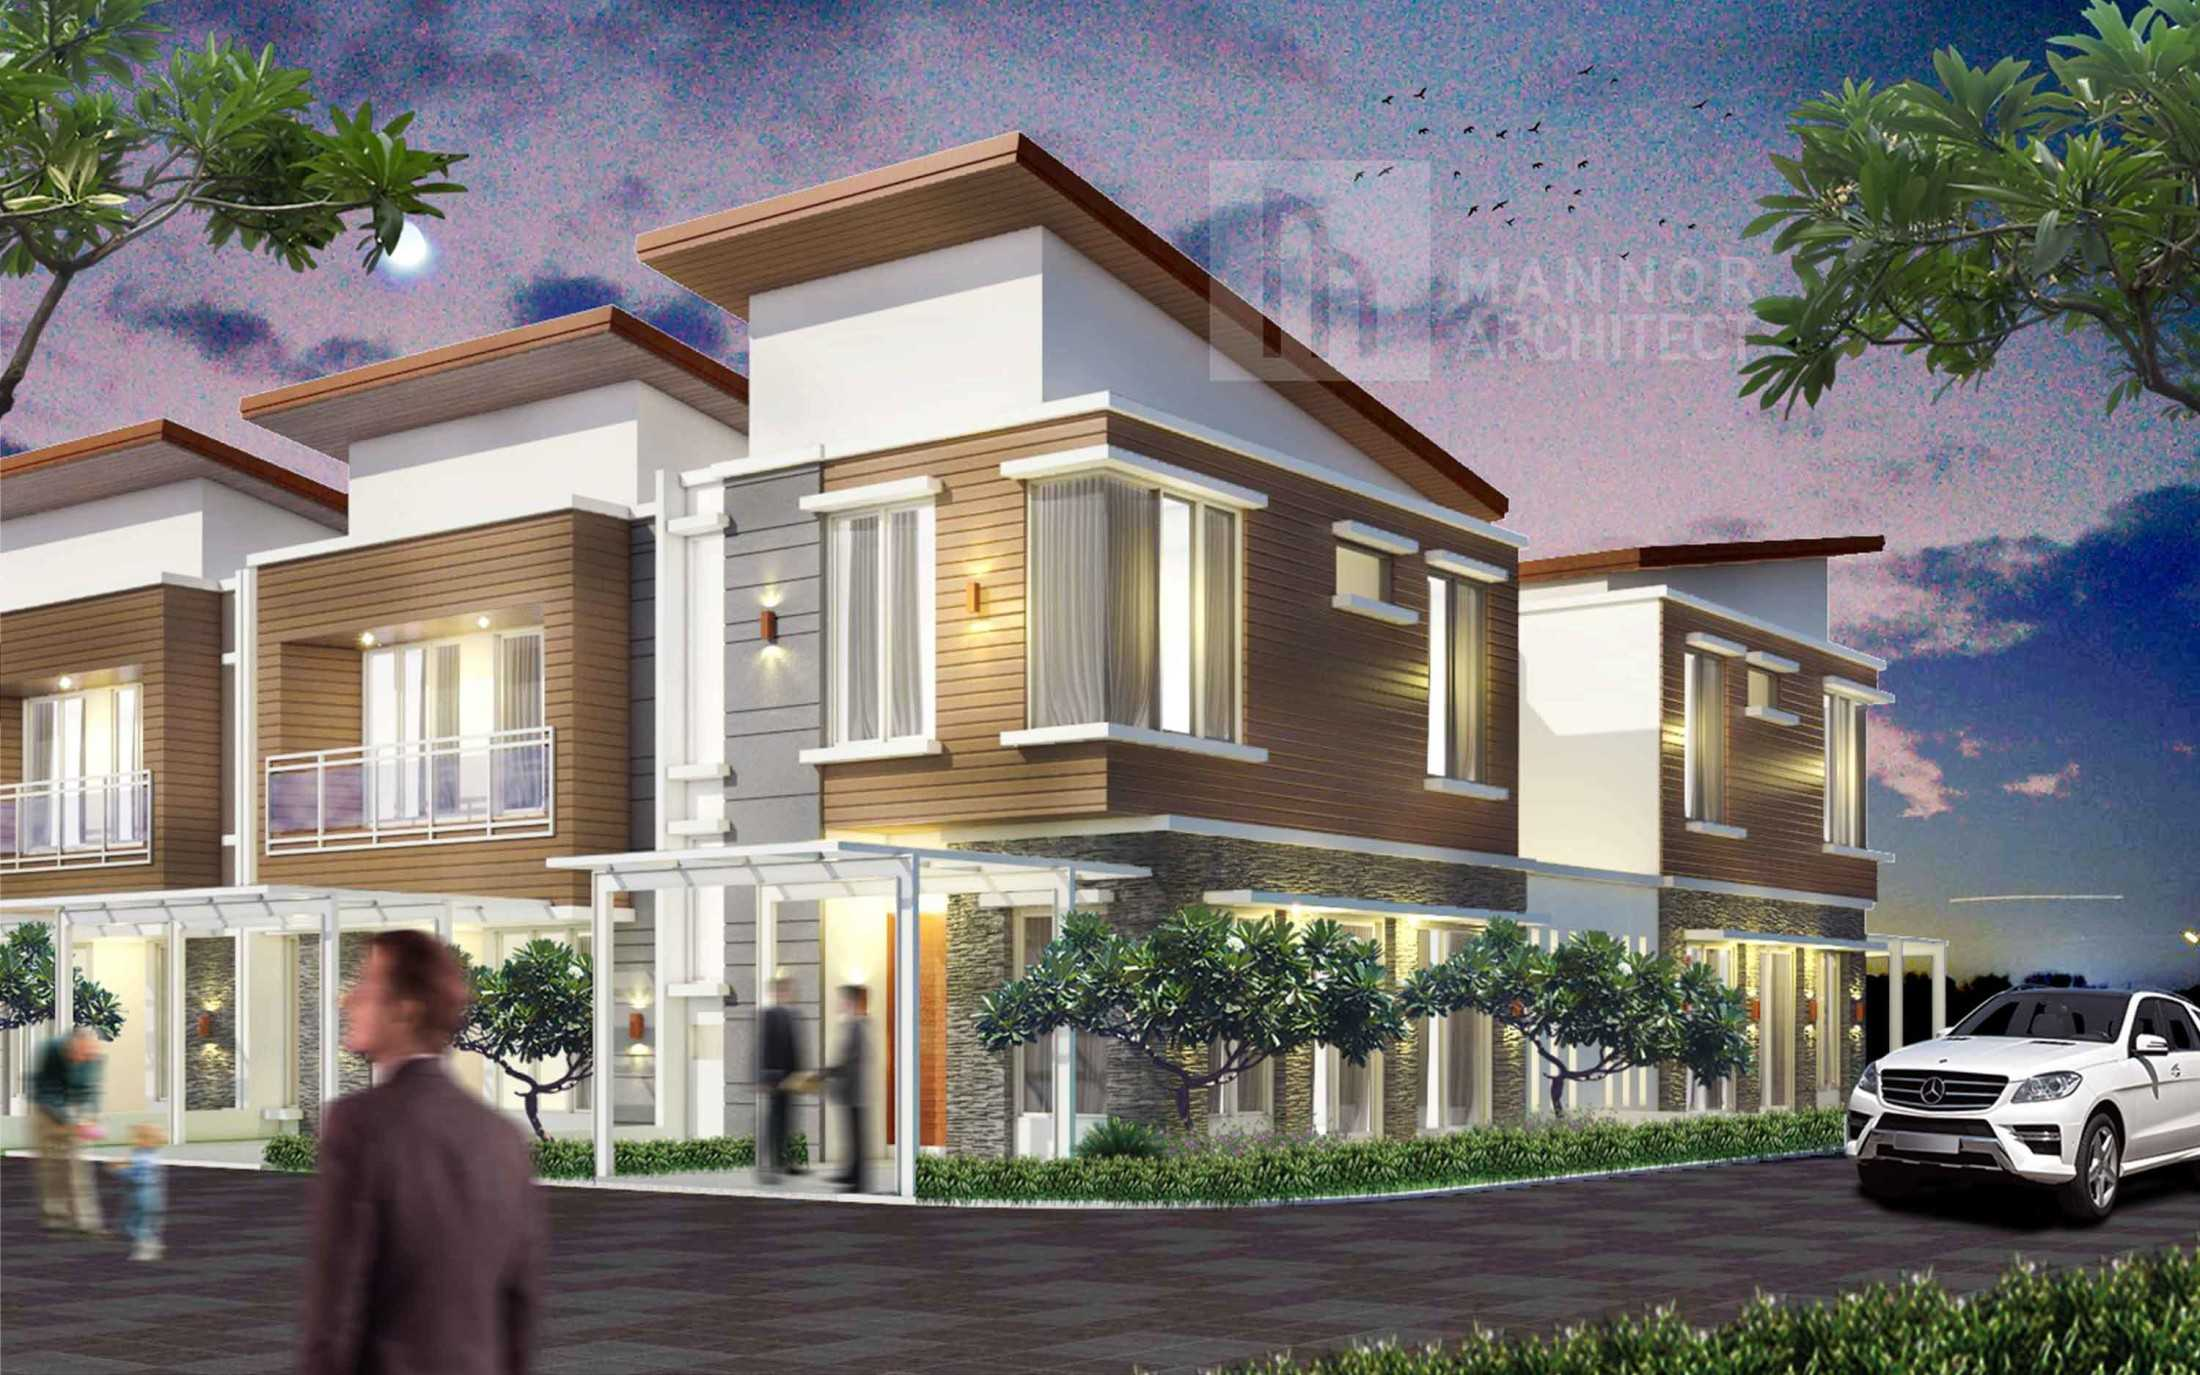 Mannor Architect Green Hills Project Padang - Sumatera Barat Padang, Kota Padang, Sumatera Barat, Indonesia Padang, Kota Padang, Sumatera Barat, Indonesia Mannor-Architect-Green-Hills-Project-Padang-Sumatera-Barat  57430